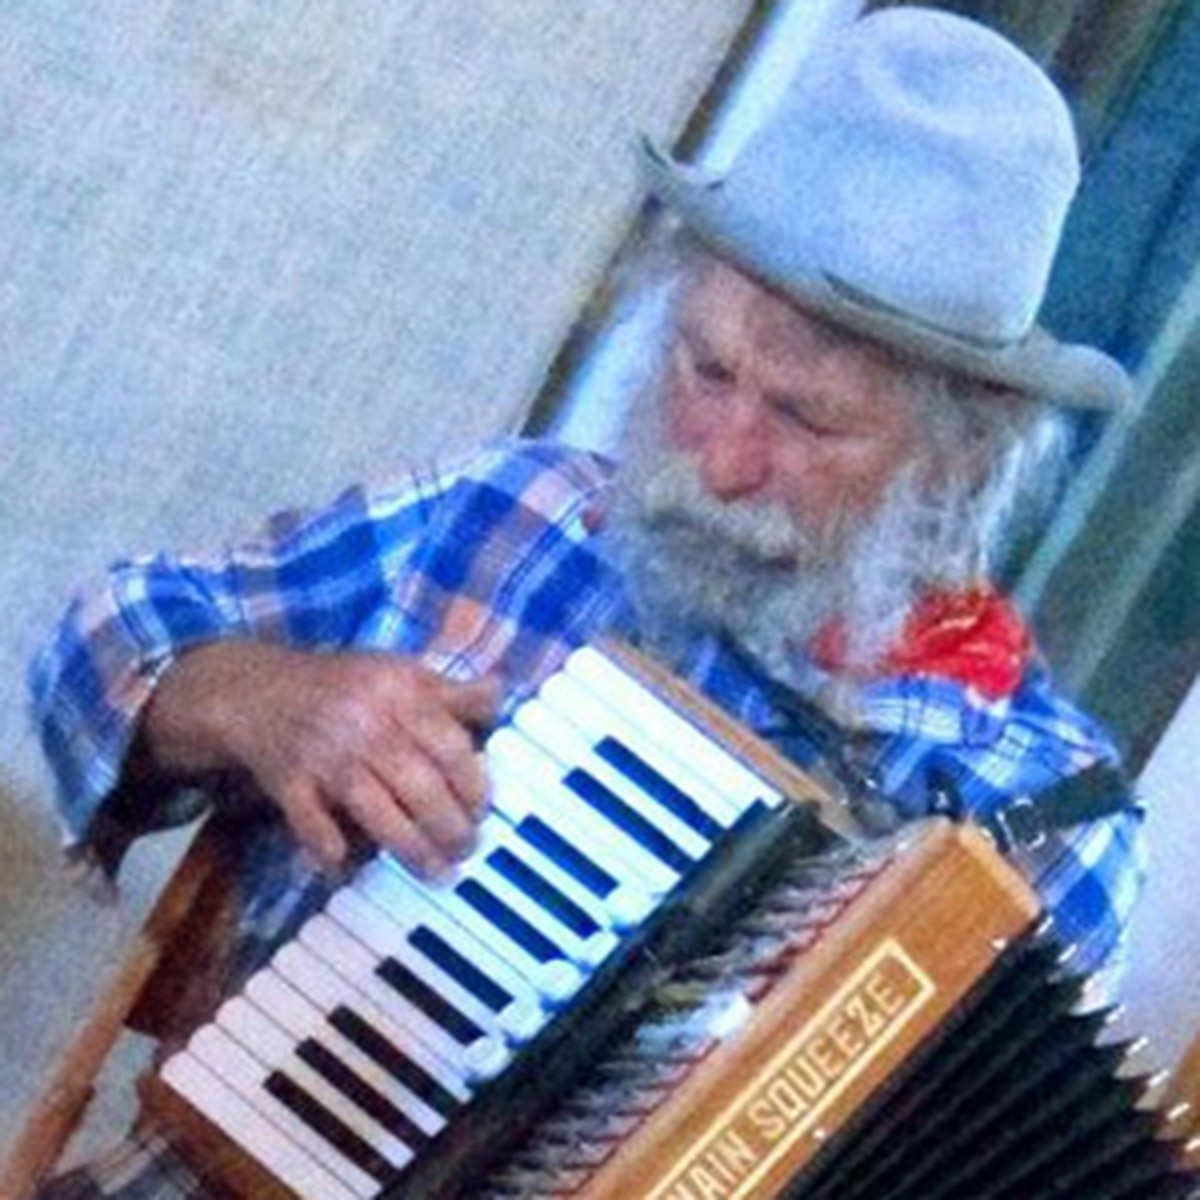 J. Michael Combs & Eagle Star An afternoon of folk from an ensemble led by Combs on the accordion. More Info>>